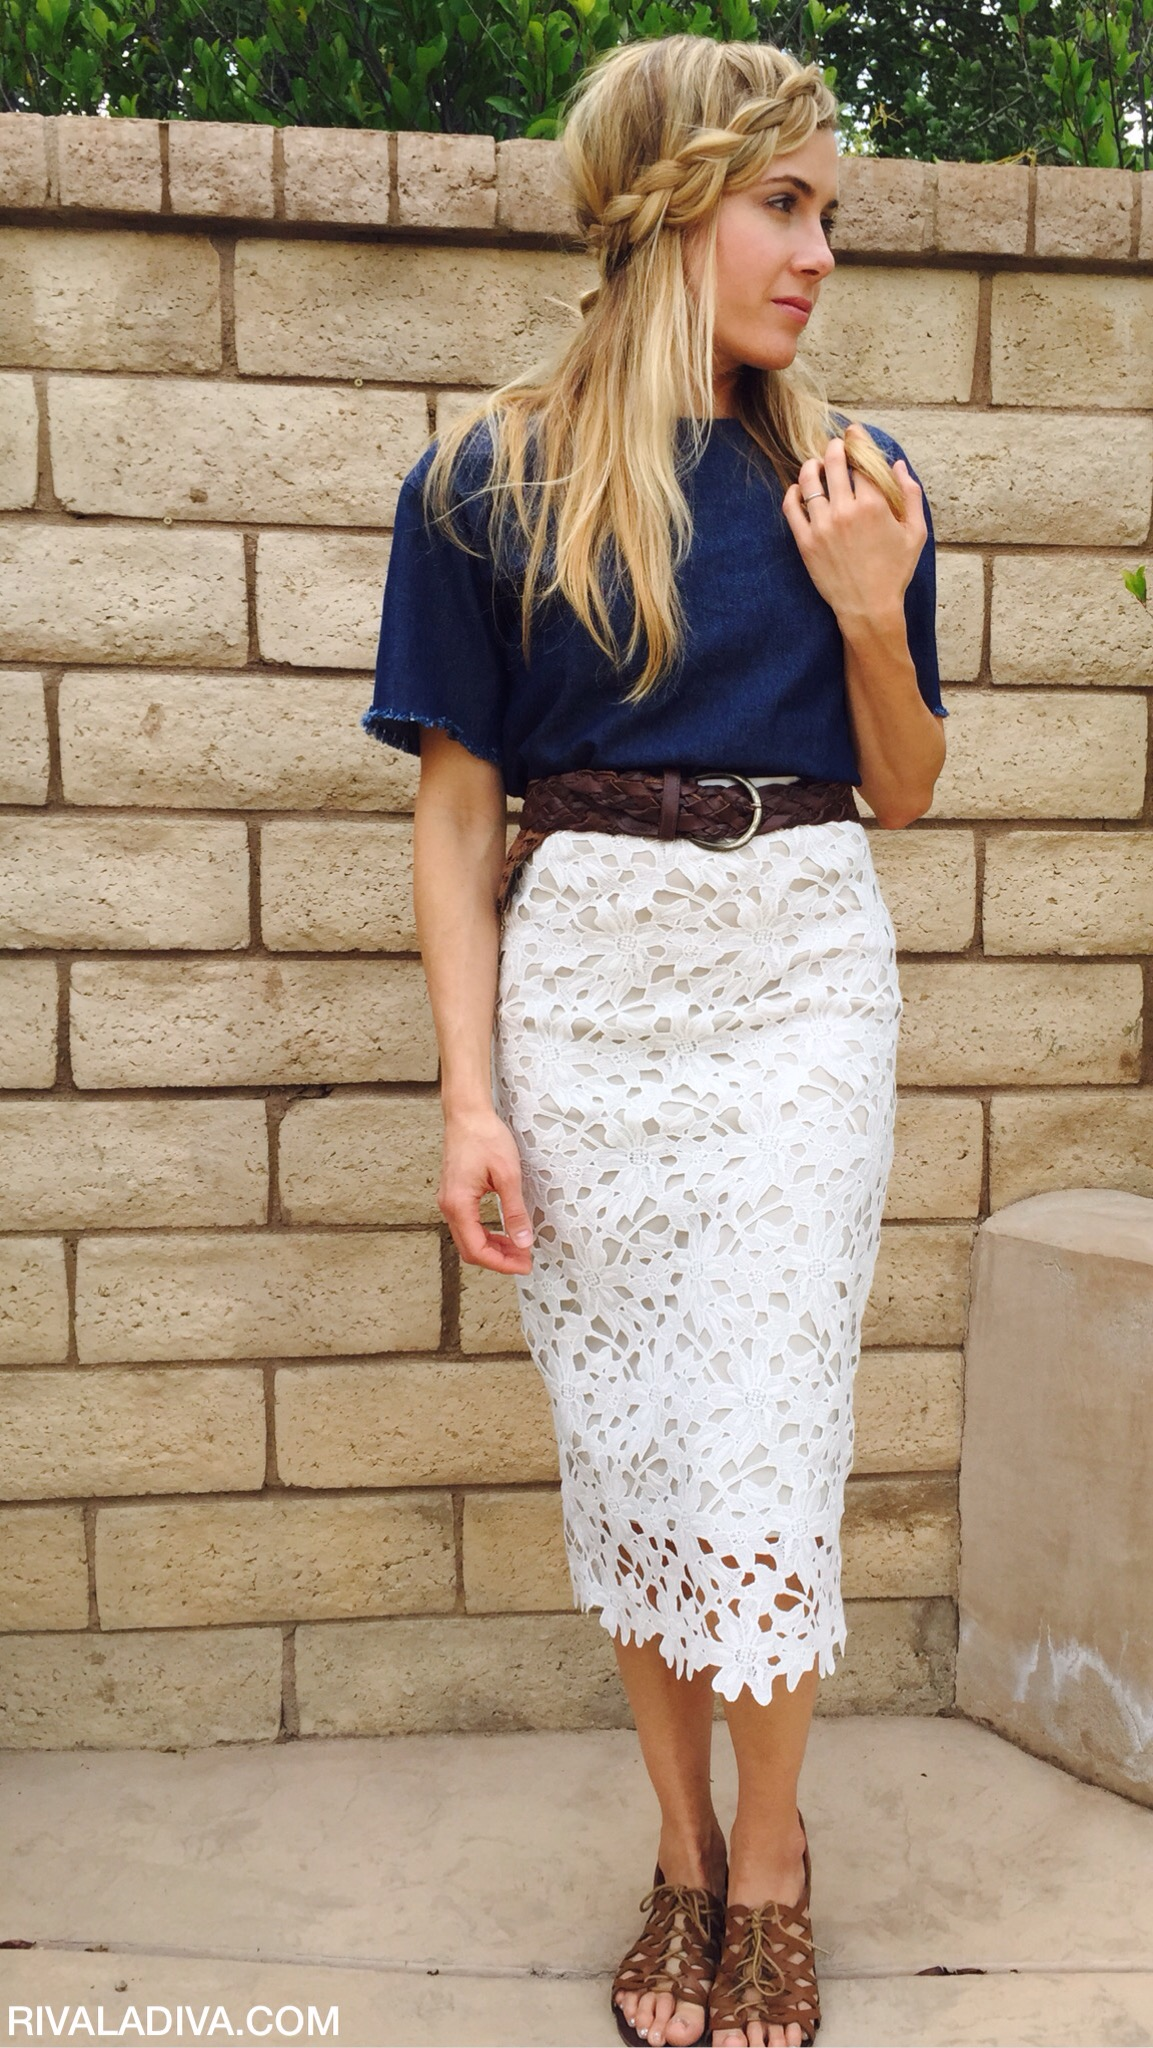 DIY Michael Kors Inspired Lace Skirt - Riva la Diva